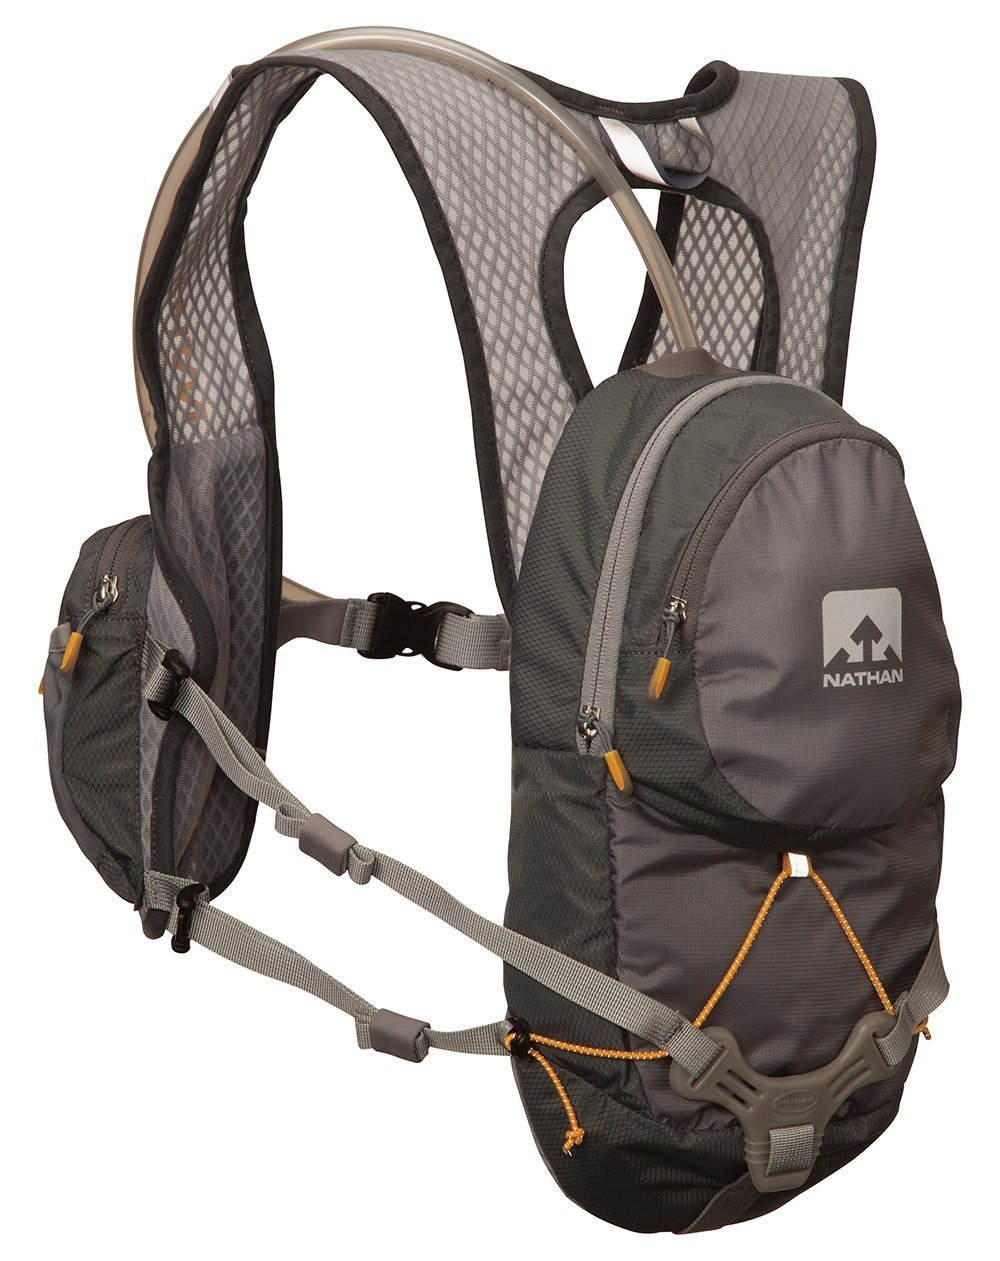 hydration pack, best hydration pack, best hydration backpack, best hydration pack for mountain biking, hiking hydration pack, hydration backpack, best hydration pack for running, running hydration packs, hydration backpack for running, best hydration pack for marathon running, best camelbak for running, best hydration pack for trail running, water backpack